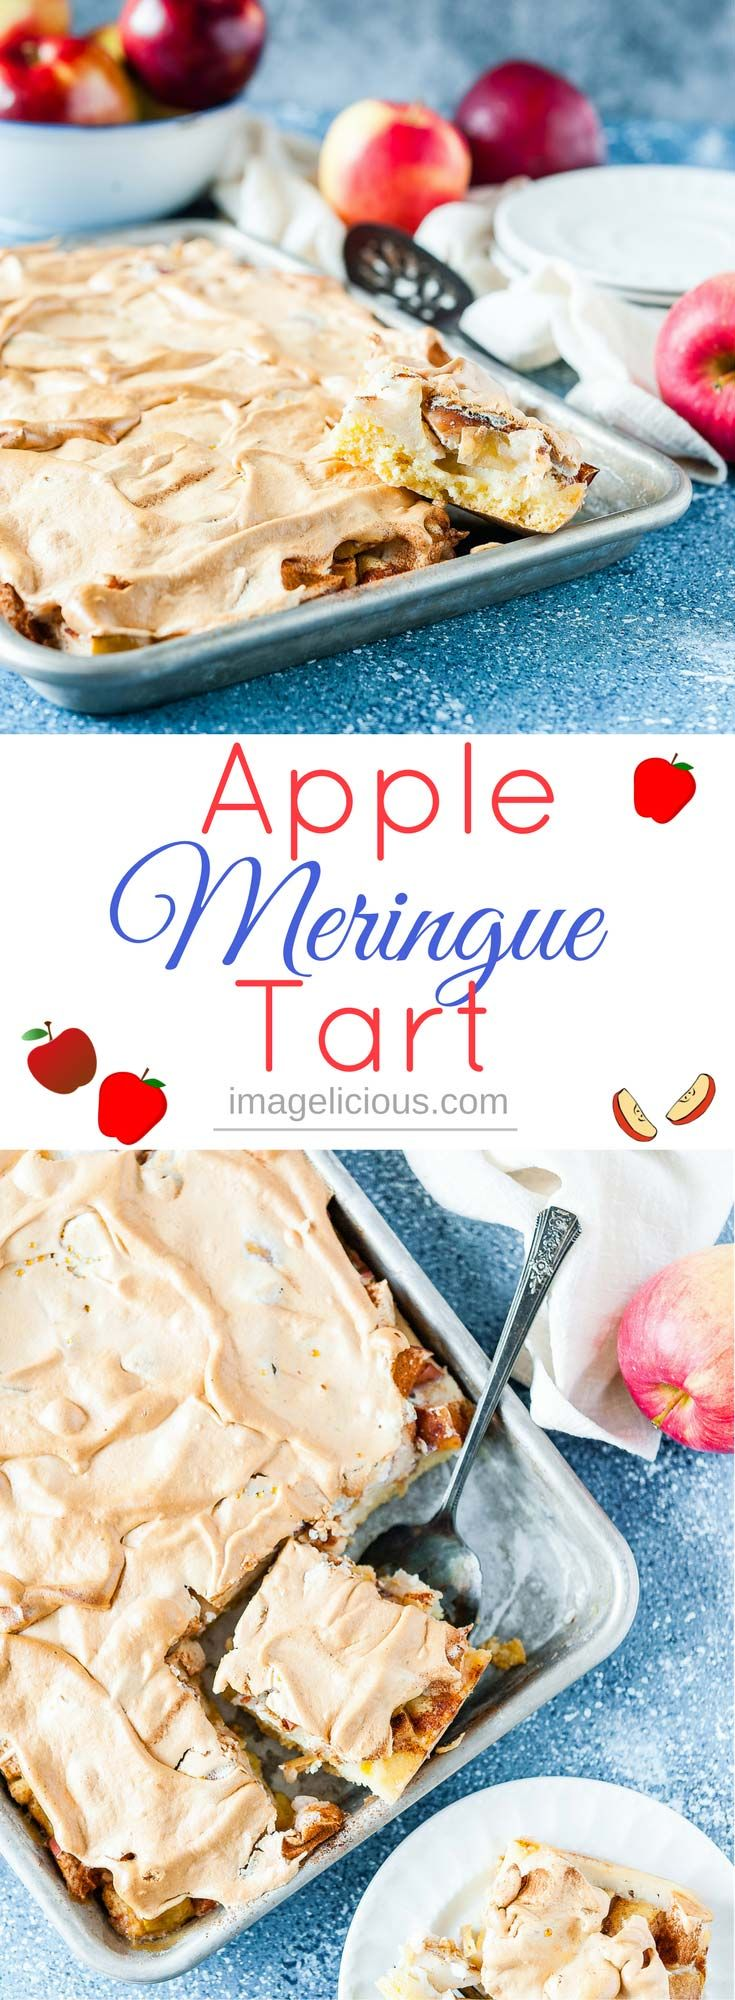 This Apple Meringue Tart is a gorgeous and delicious dessert at any time of the year. It looks beautiful and tastes festive and elegant. With a touch of cinnamon and soft and pillowy meringue topping | Imagelicious #Apples #AppleBaking #Meringues #Tarts #Dessert #OnAppleADay